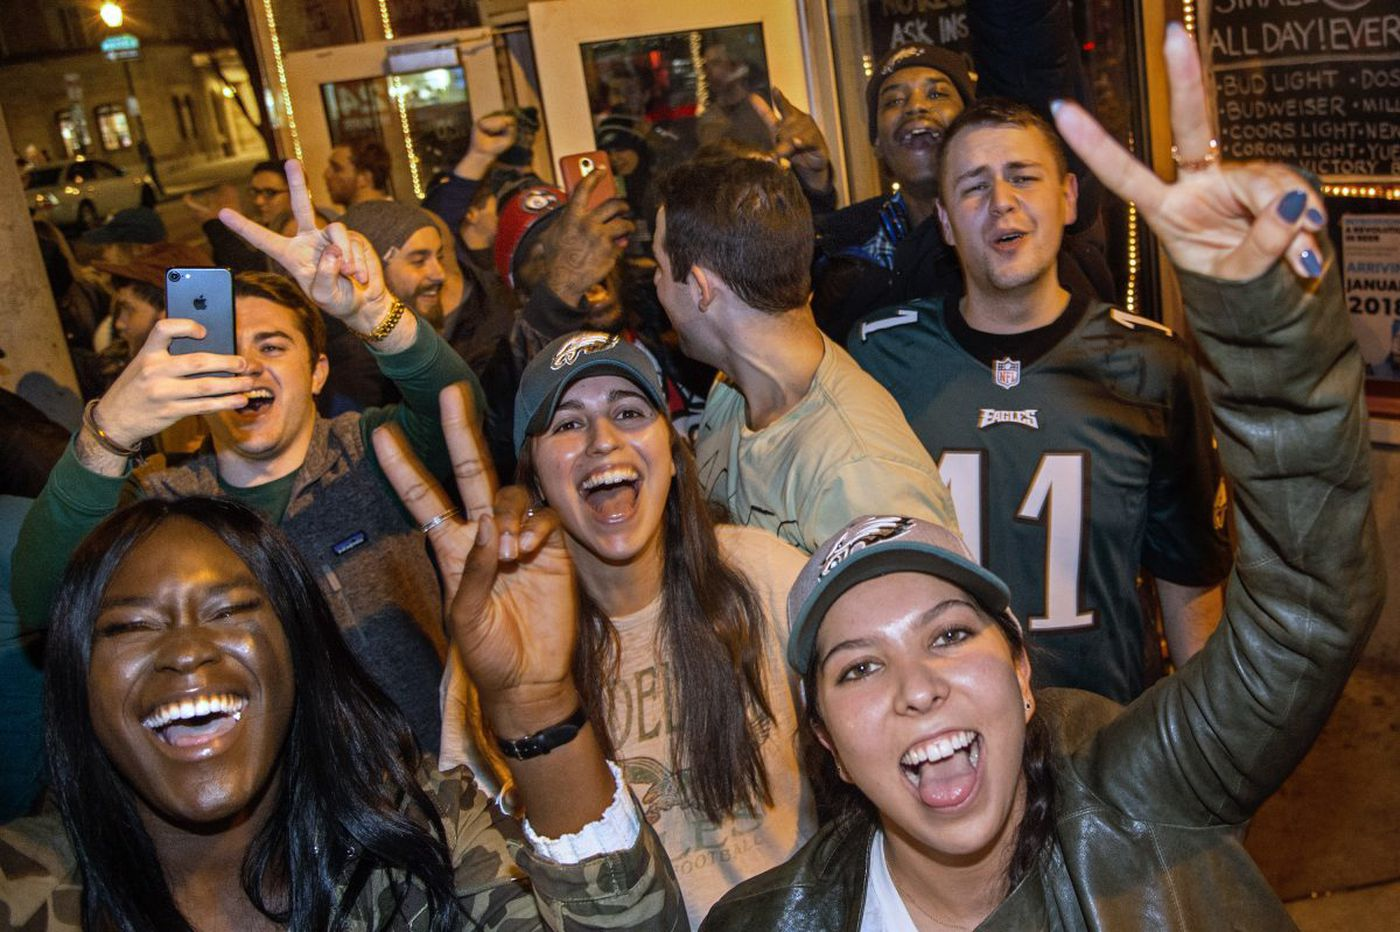 Where to find the flyest Eagles Super Bowl gear